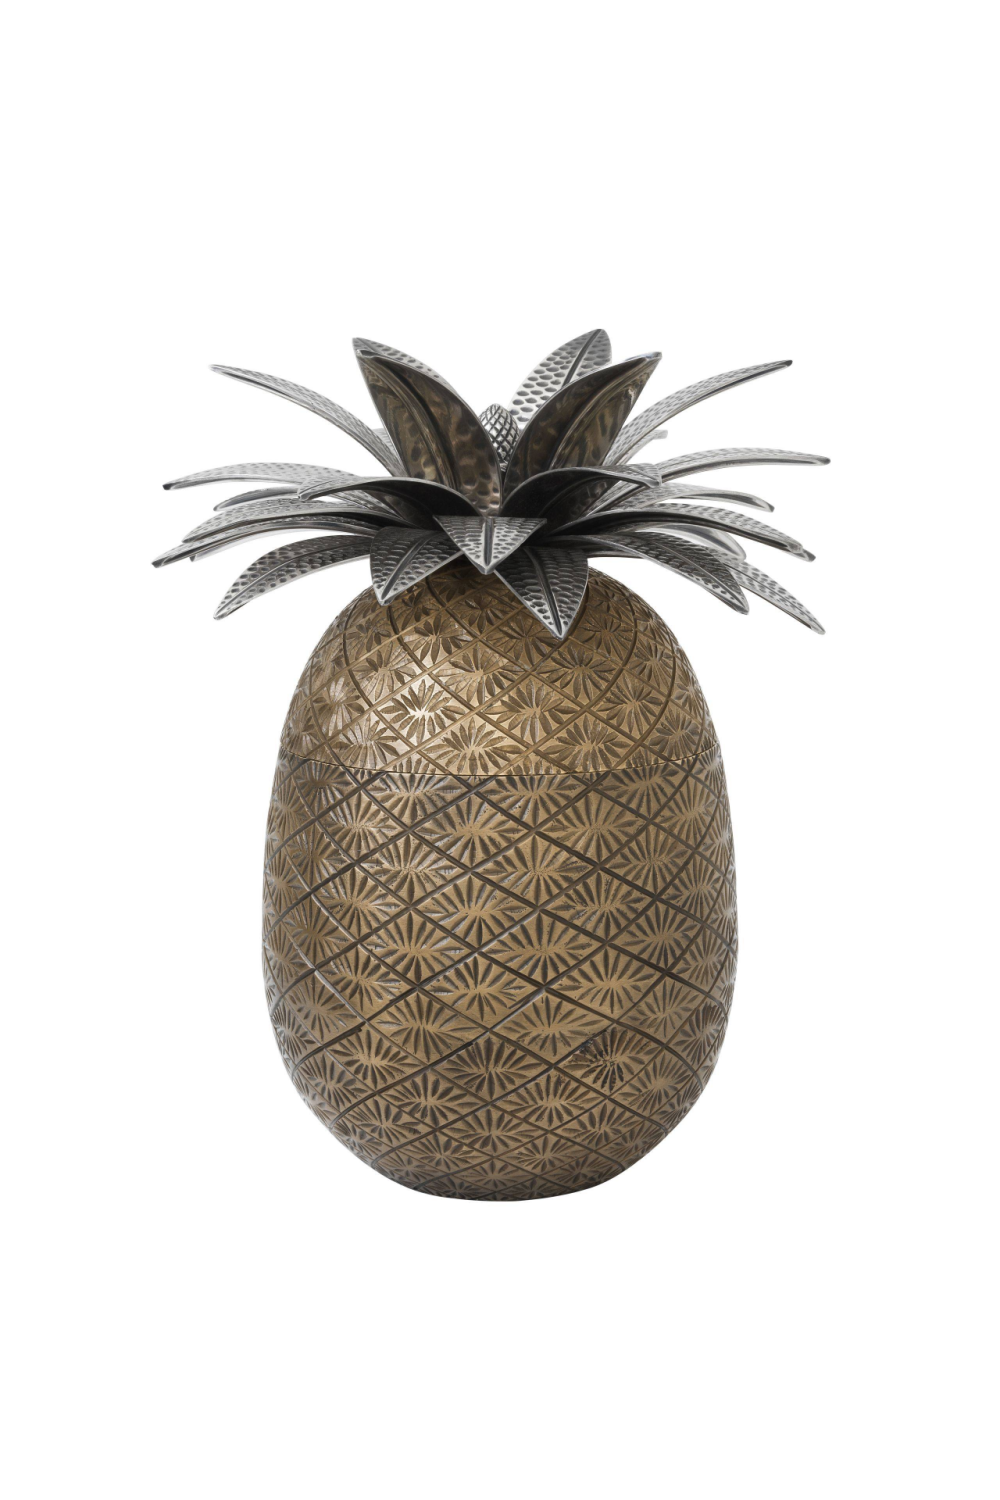 Pineapple Decorative Box | Eichholtz | #1 Eichholtz Retailer